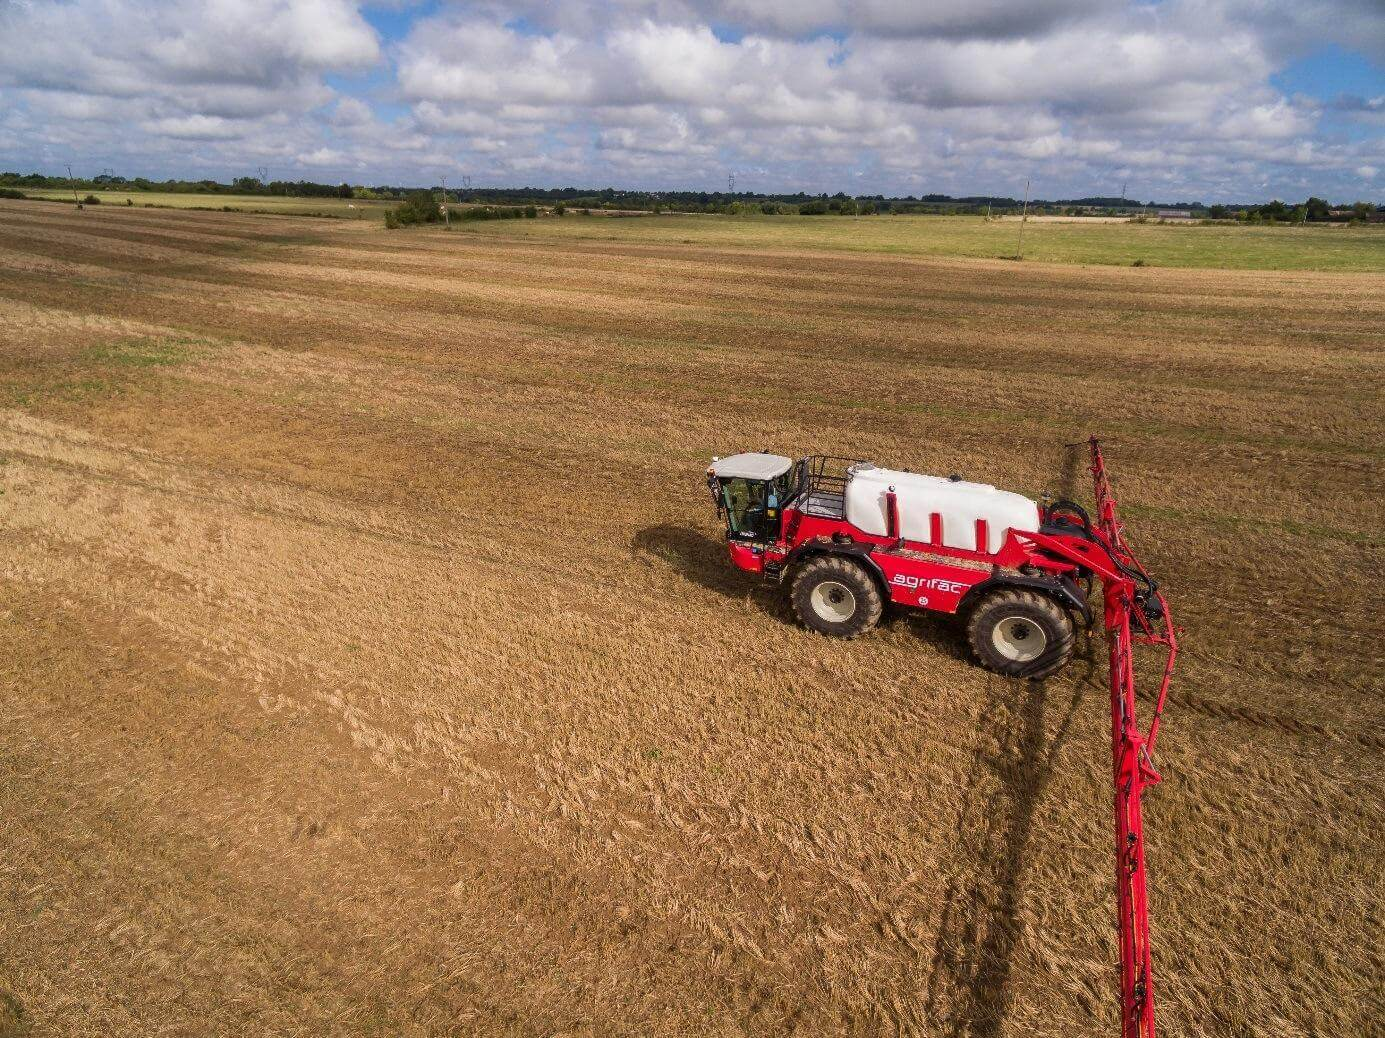 Agrifac Sprayers are now offered Ag Leader Ready